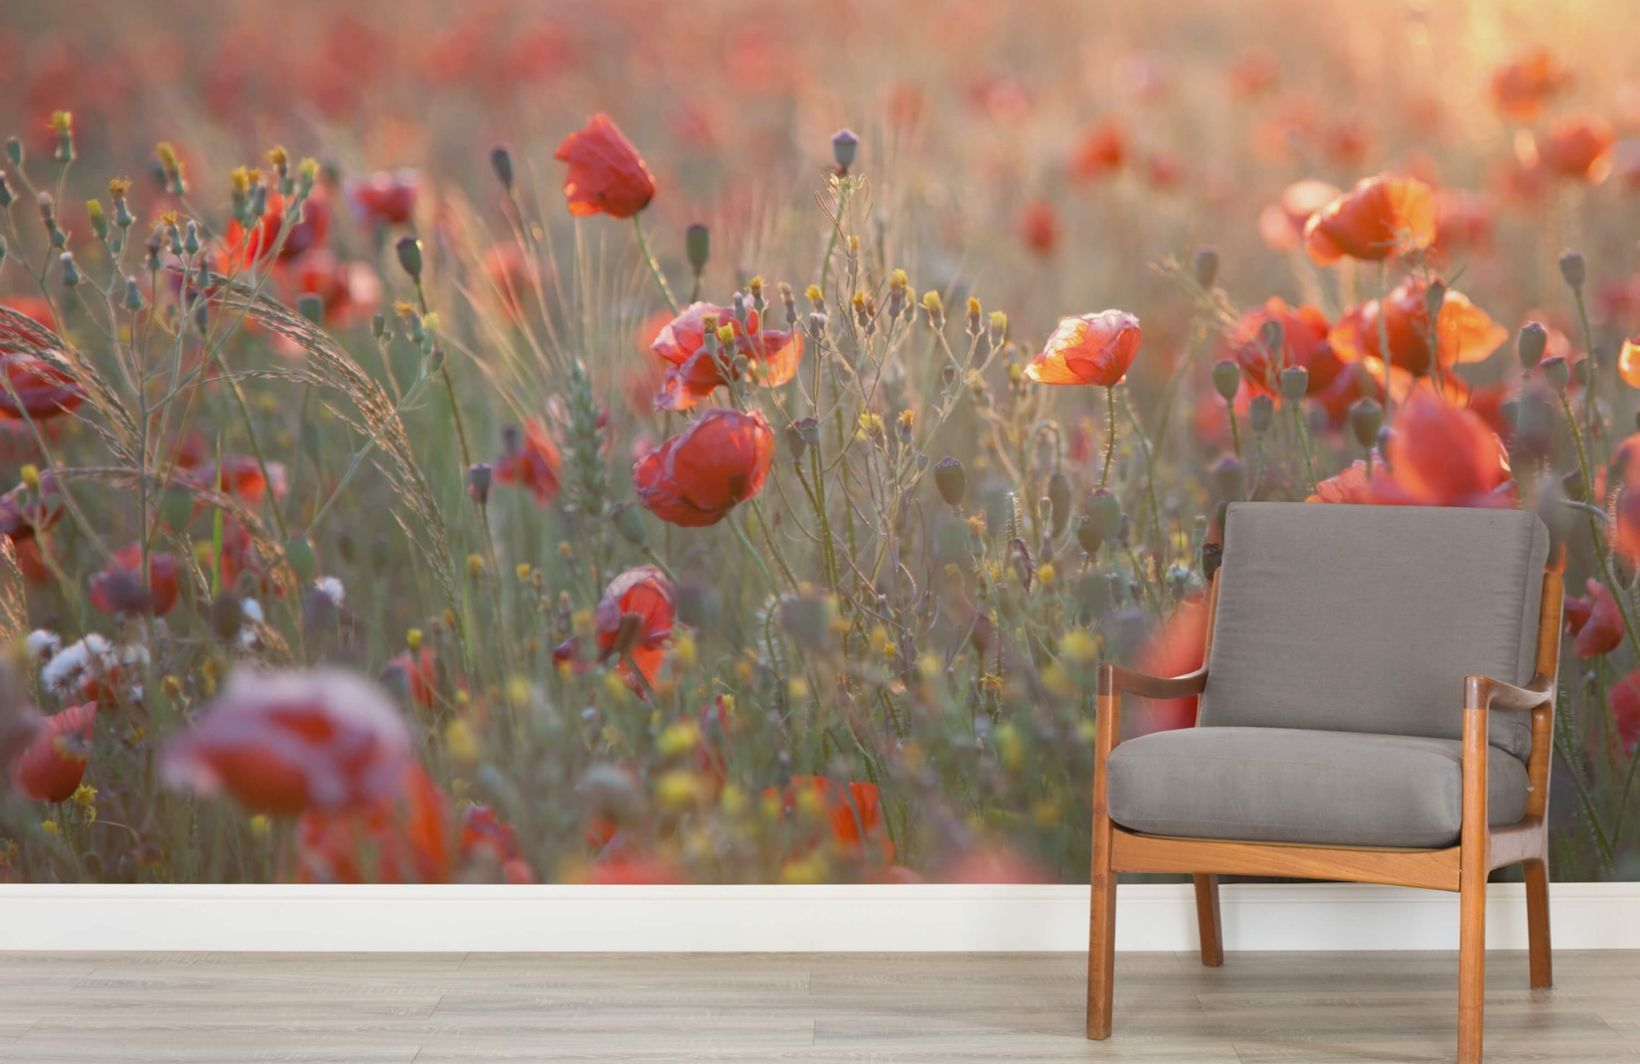 Poppy Flower Meadow Wall Mural Floral Landcape Photo Wallpaper Living Room Decor